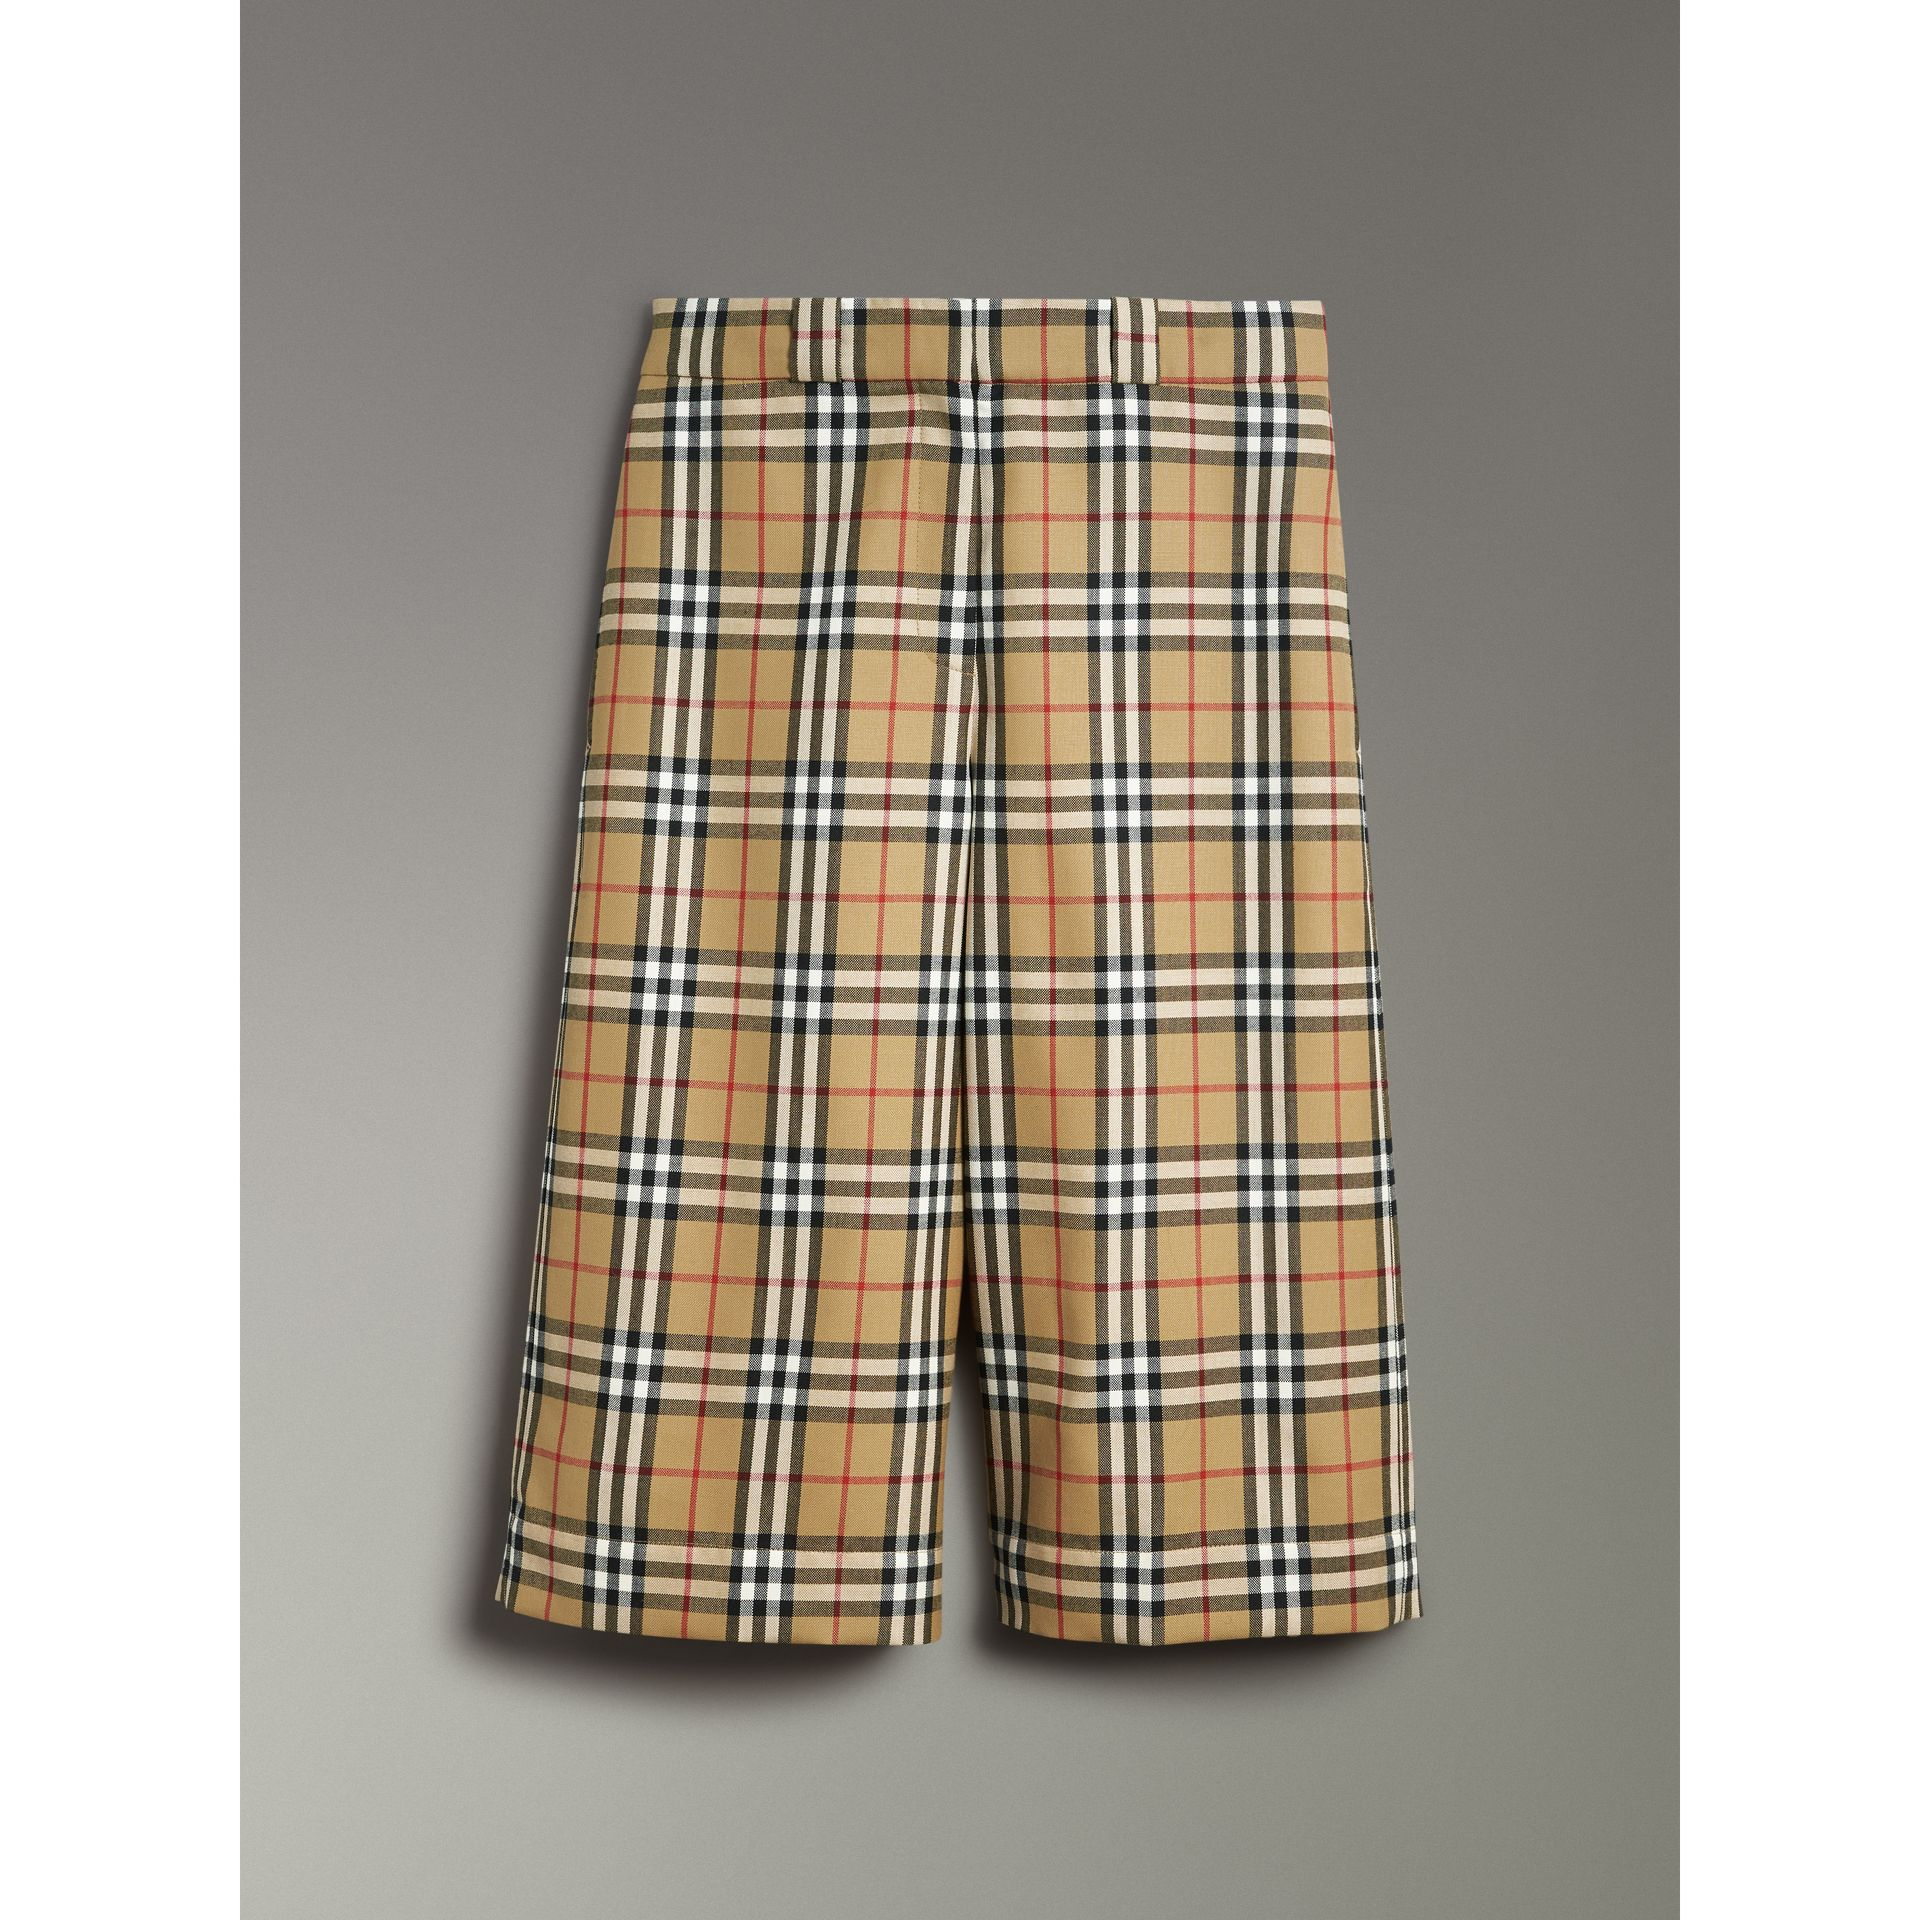 Vintage Check Wool Tailored Culottes in Antique Yellow - Women | Burberry Singapore - gallery image 3